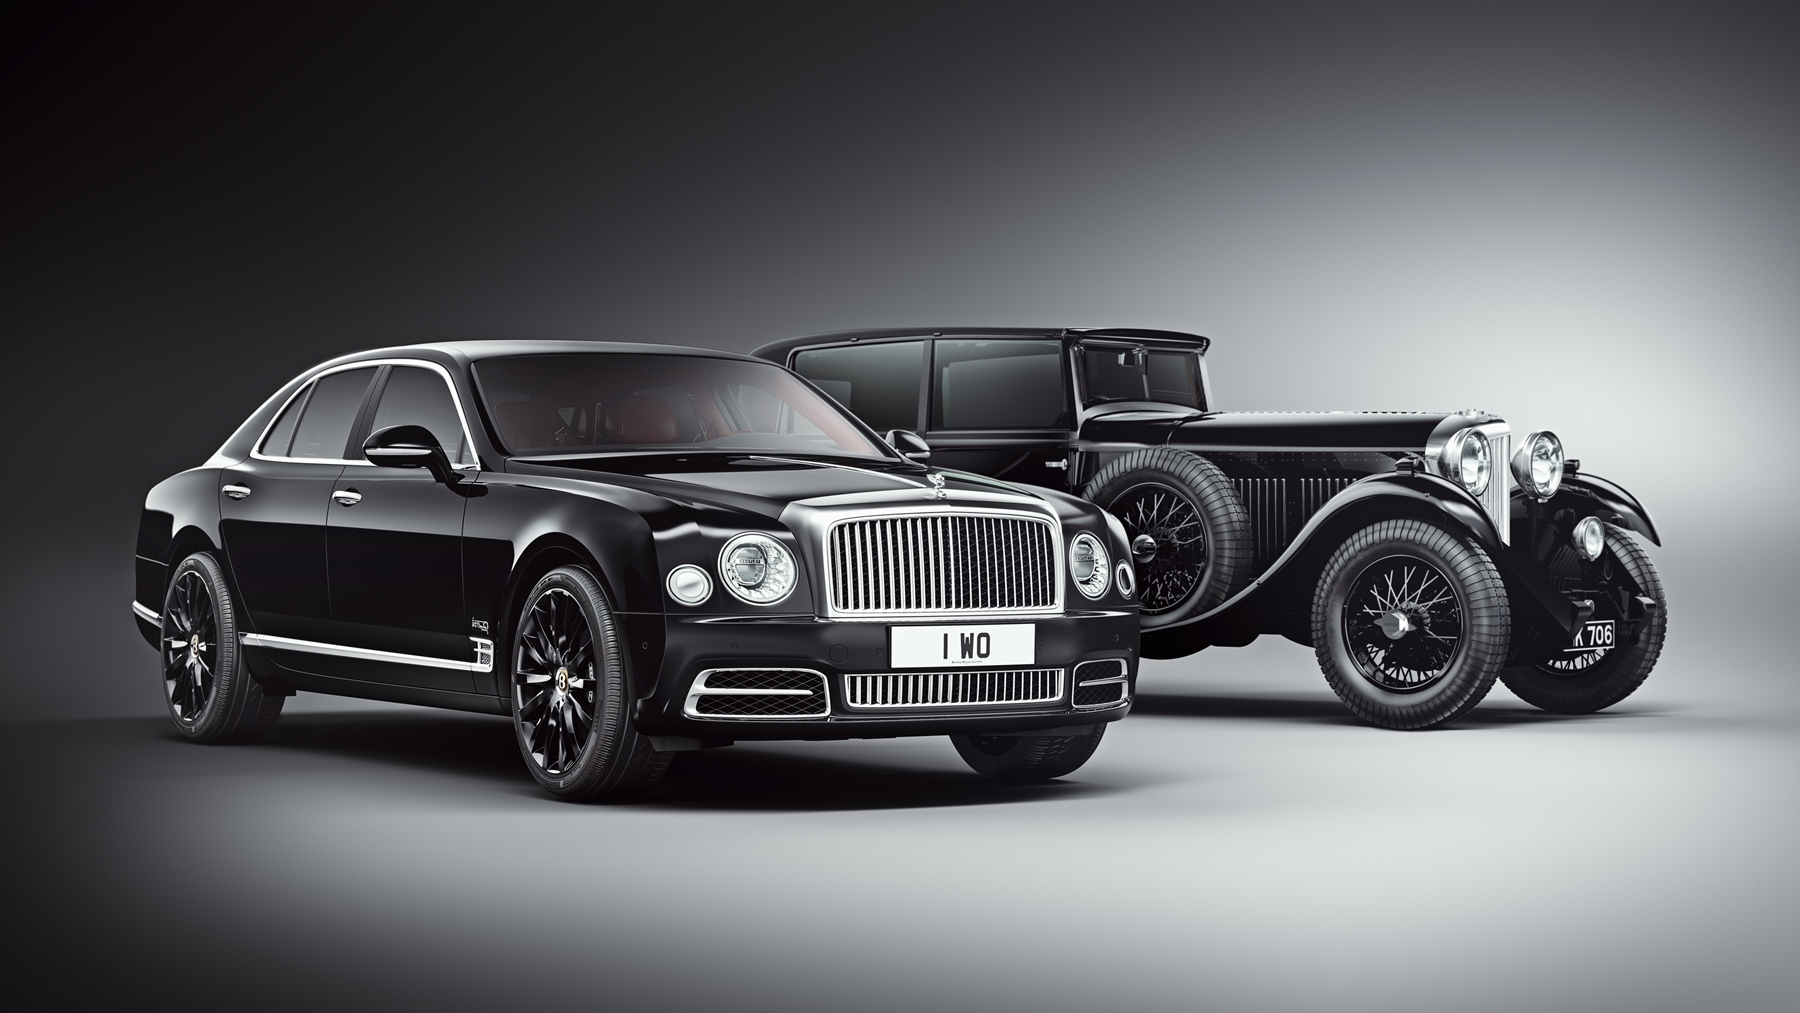 1 - Mulsanne WO Edition and 8-LitreWM